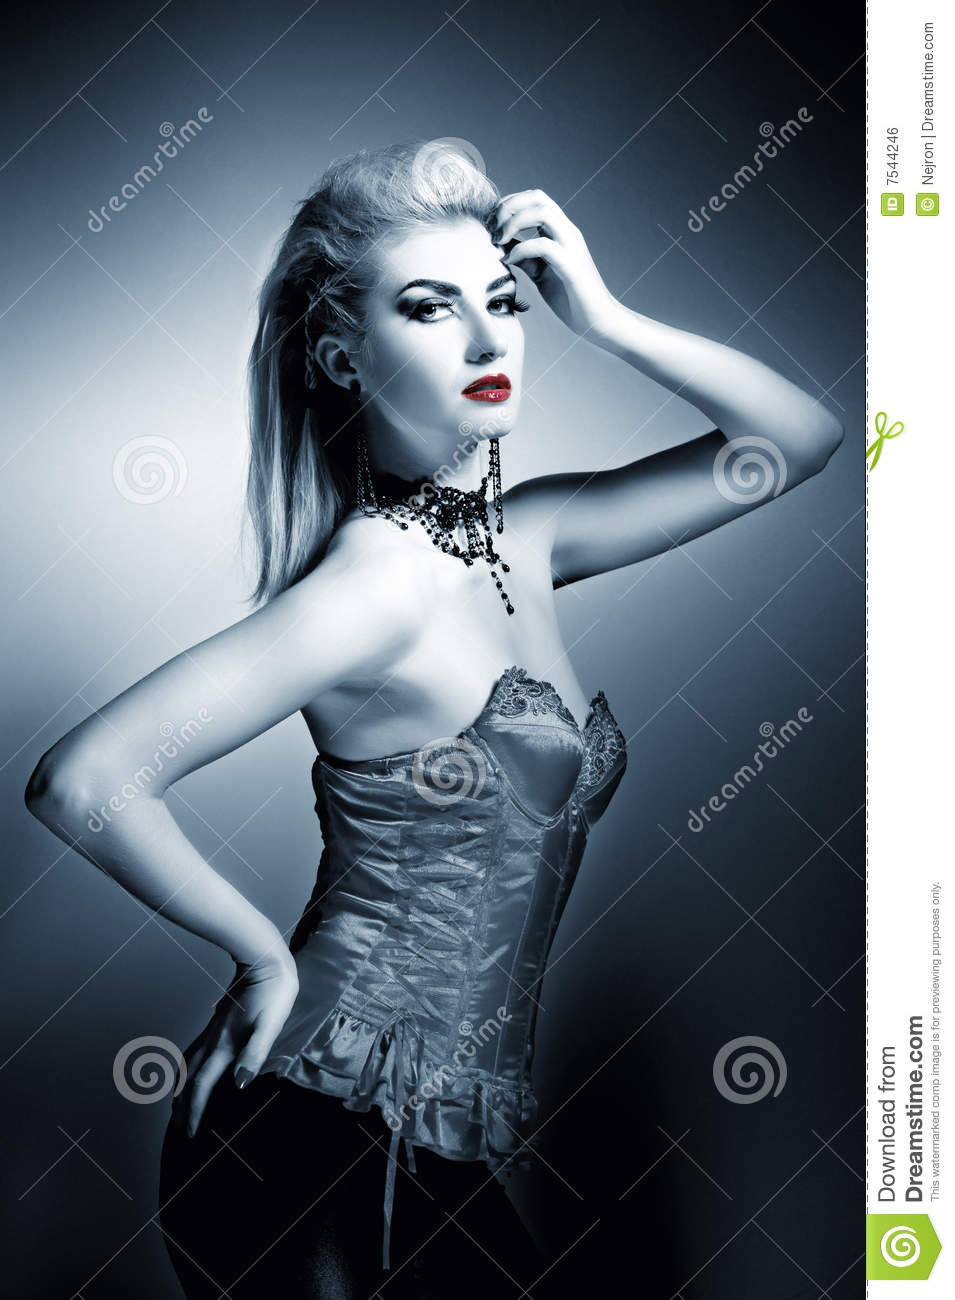 Gothic Woman Royalty Free Stock Image Image 7544246